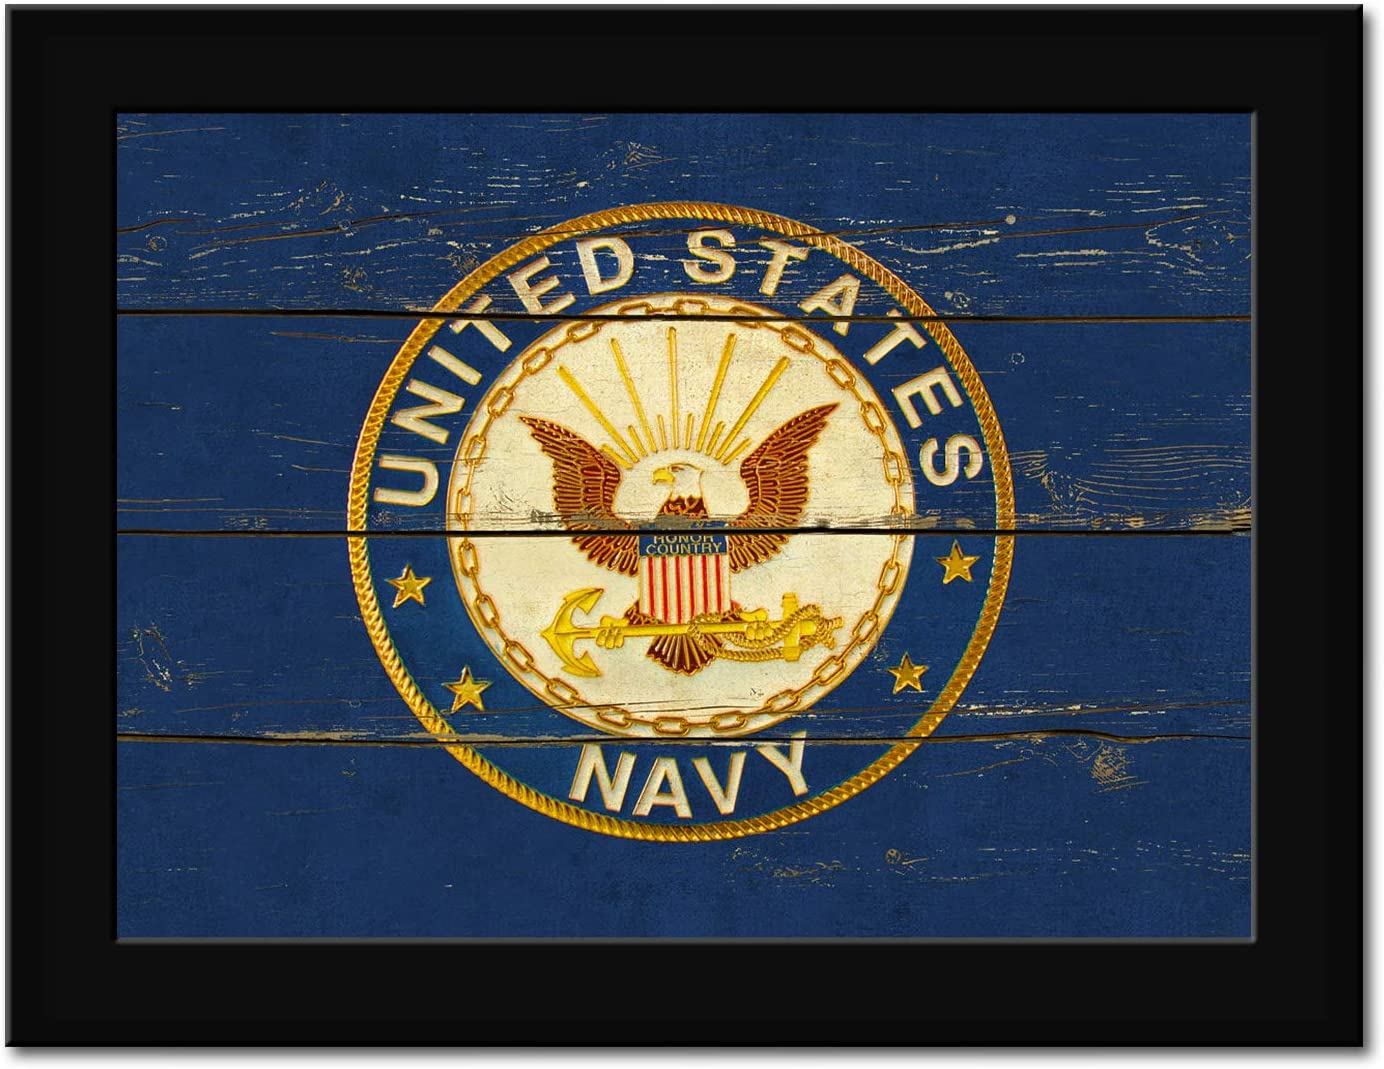 United States Navy Logo Military Militany Decor - FRAMED - Canvas Print Home Decor Desk Stand and Wall Art, Black Real Wood Frame, Blue, 7x9